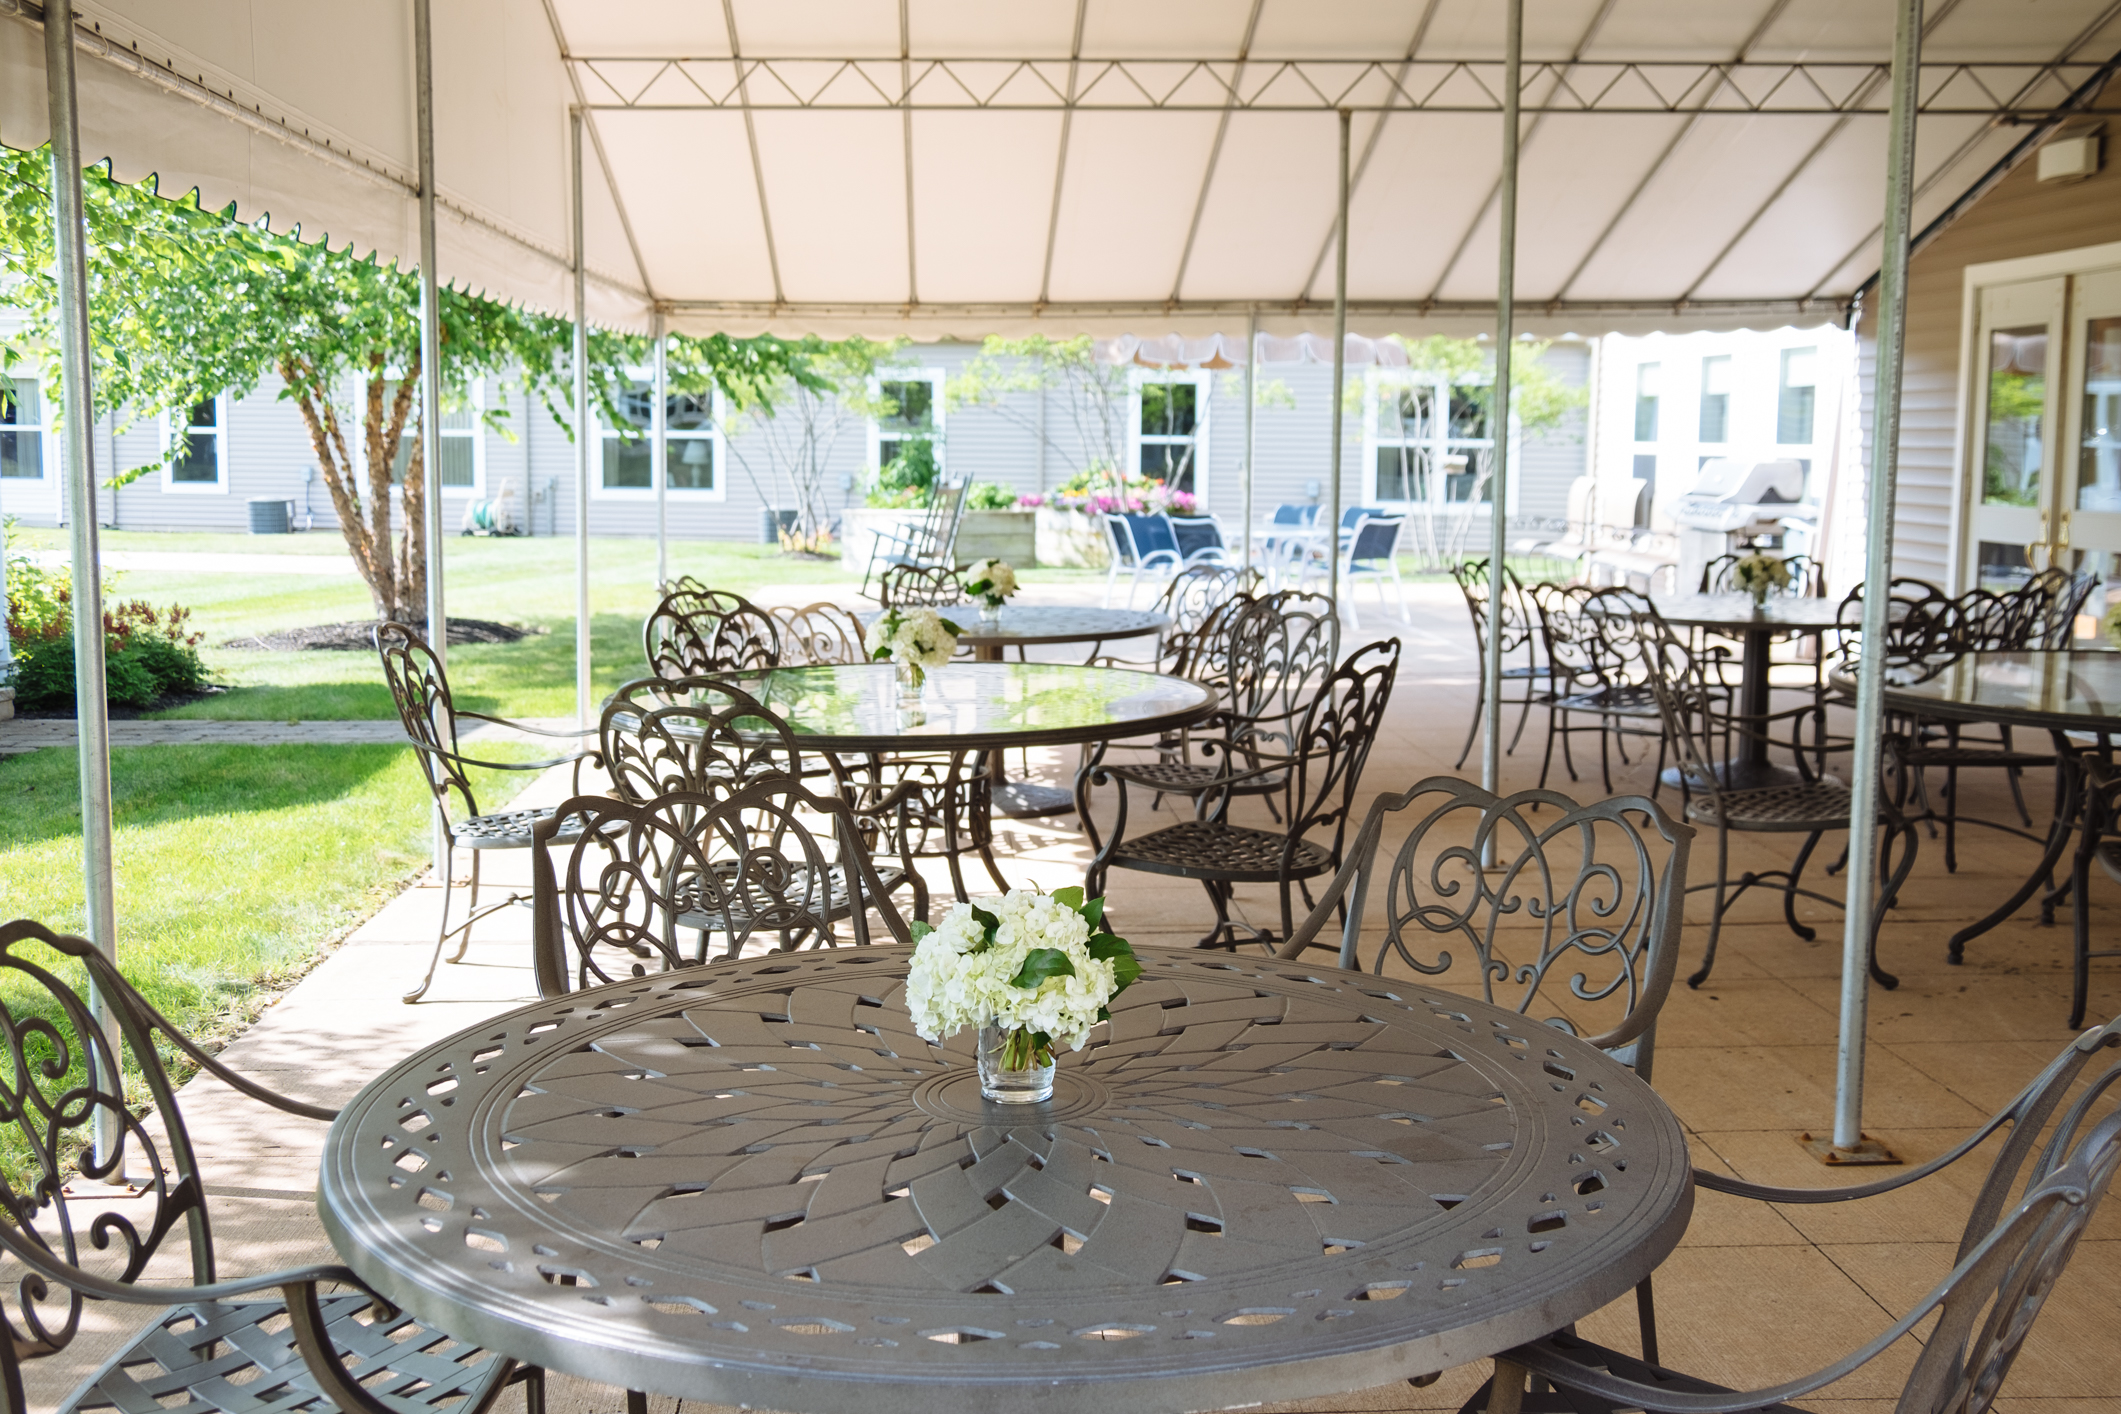 Hawthorne Ridge outside dining and seating area